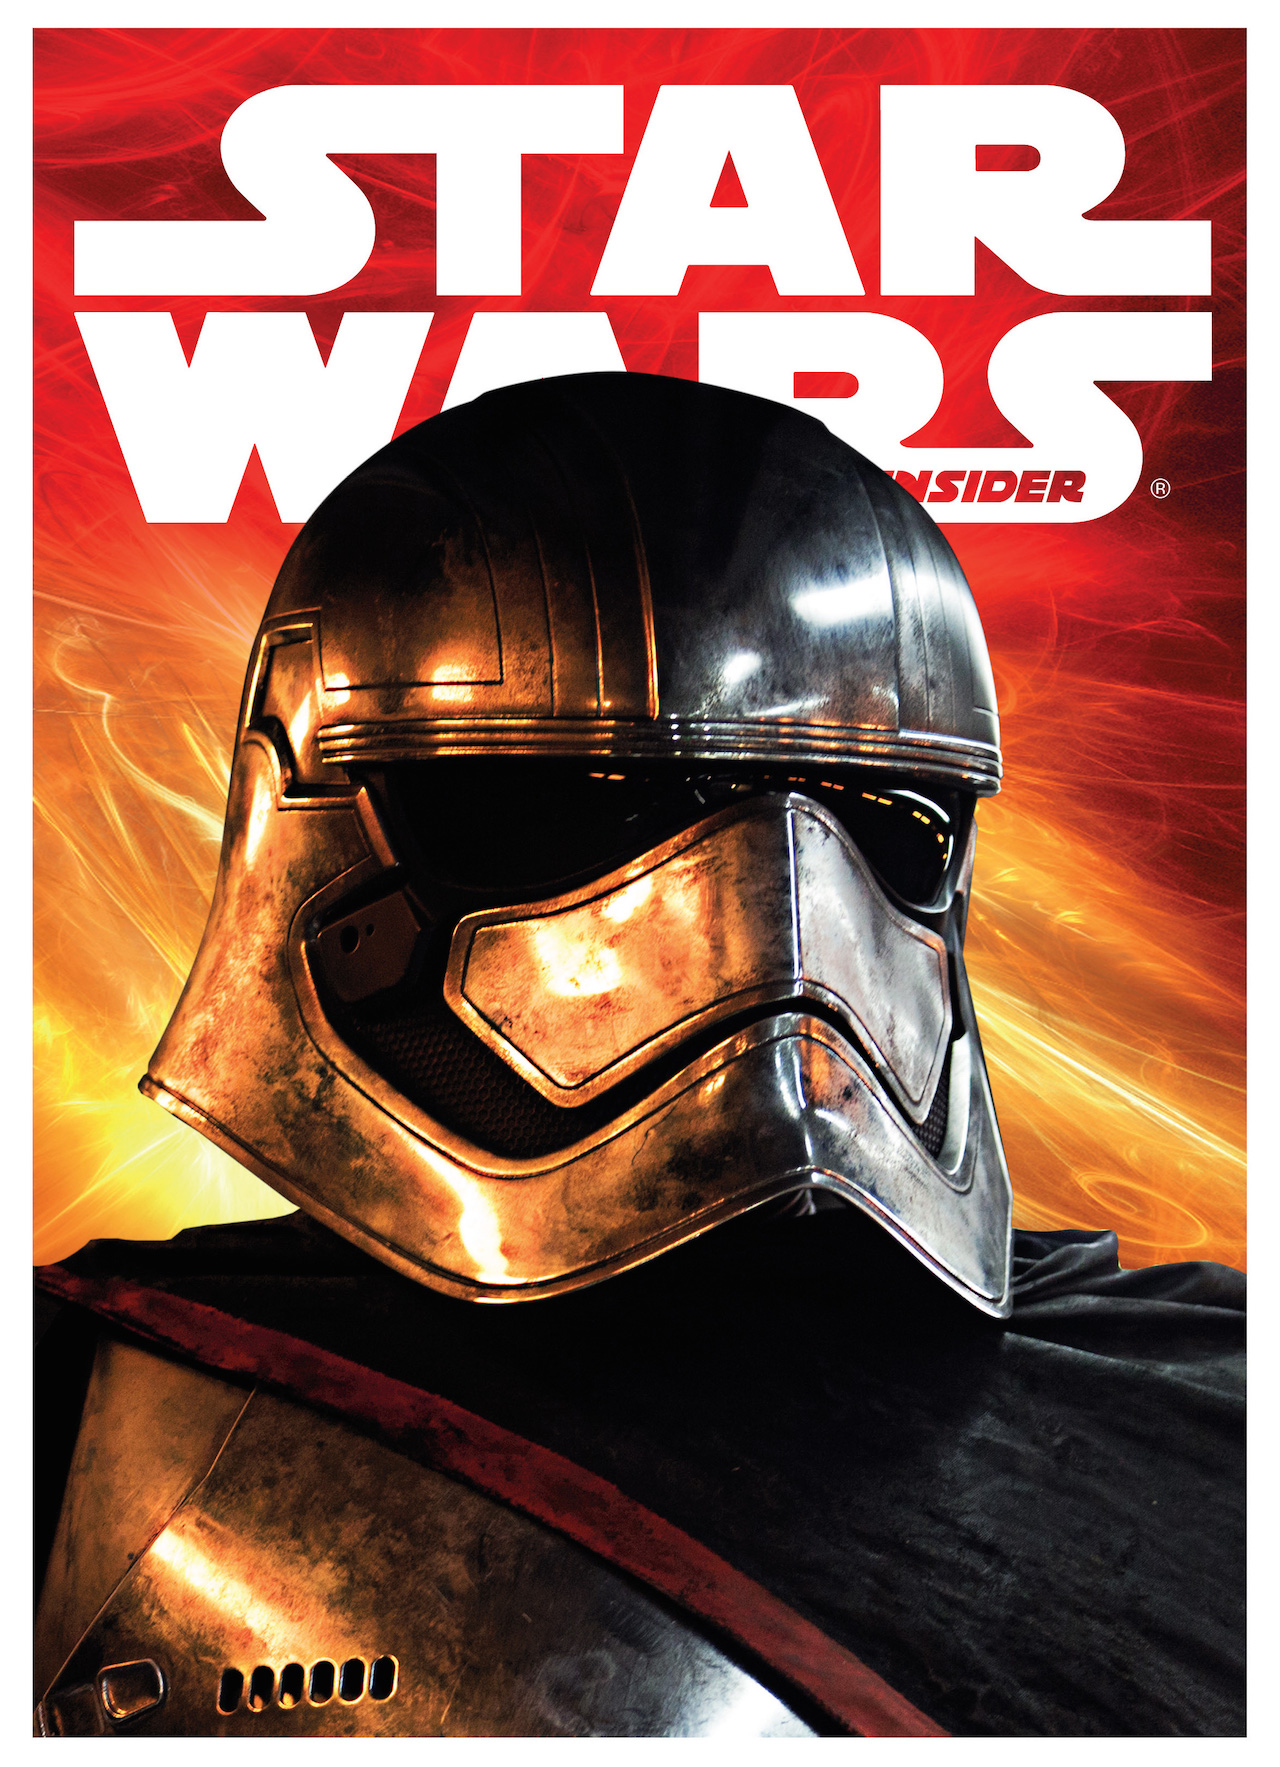 Star Wars Insider #164 - Captain Phasma Cover